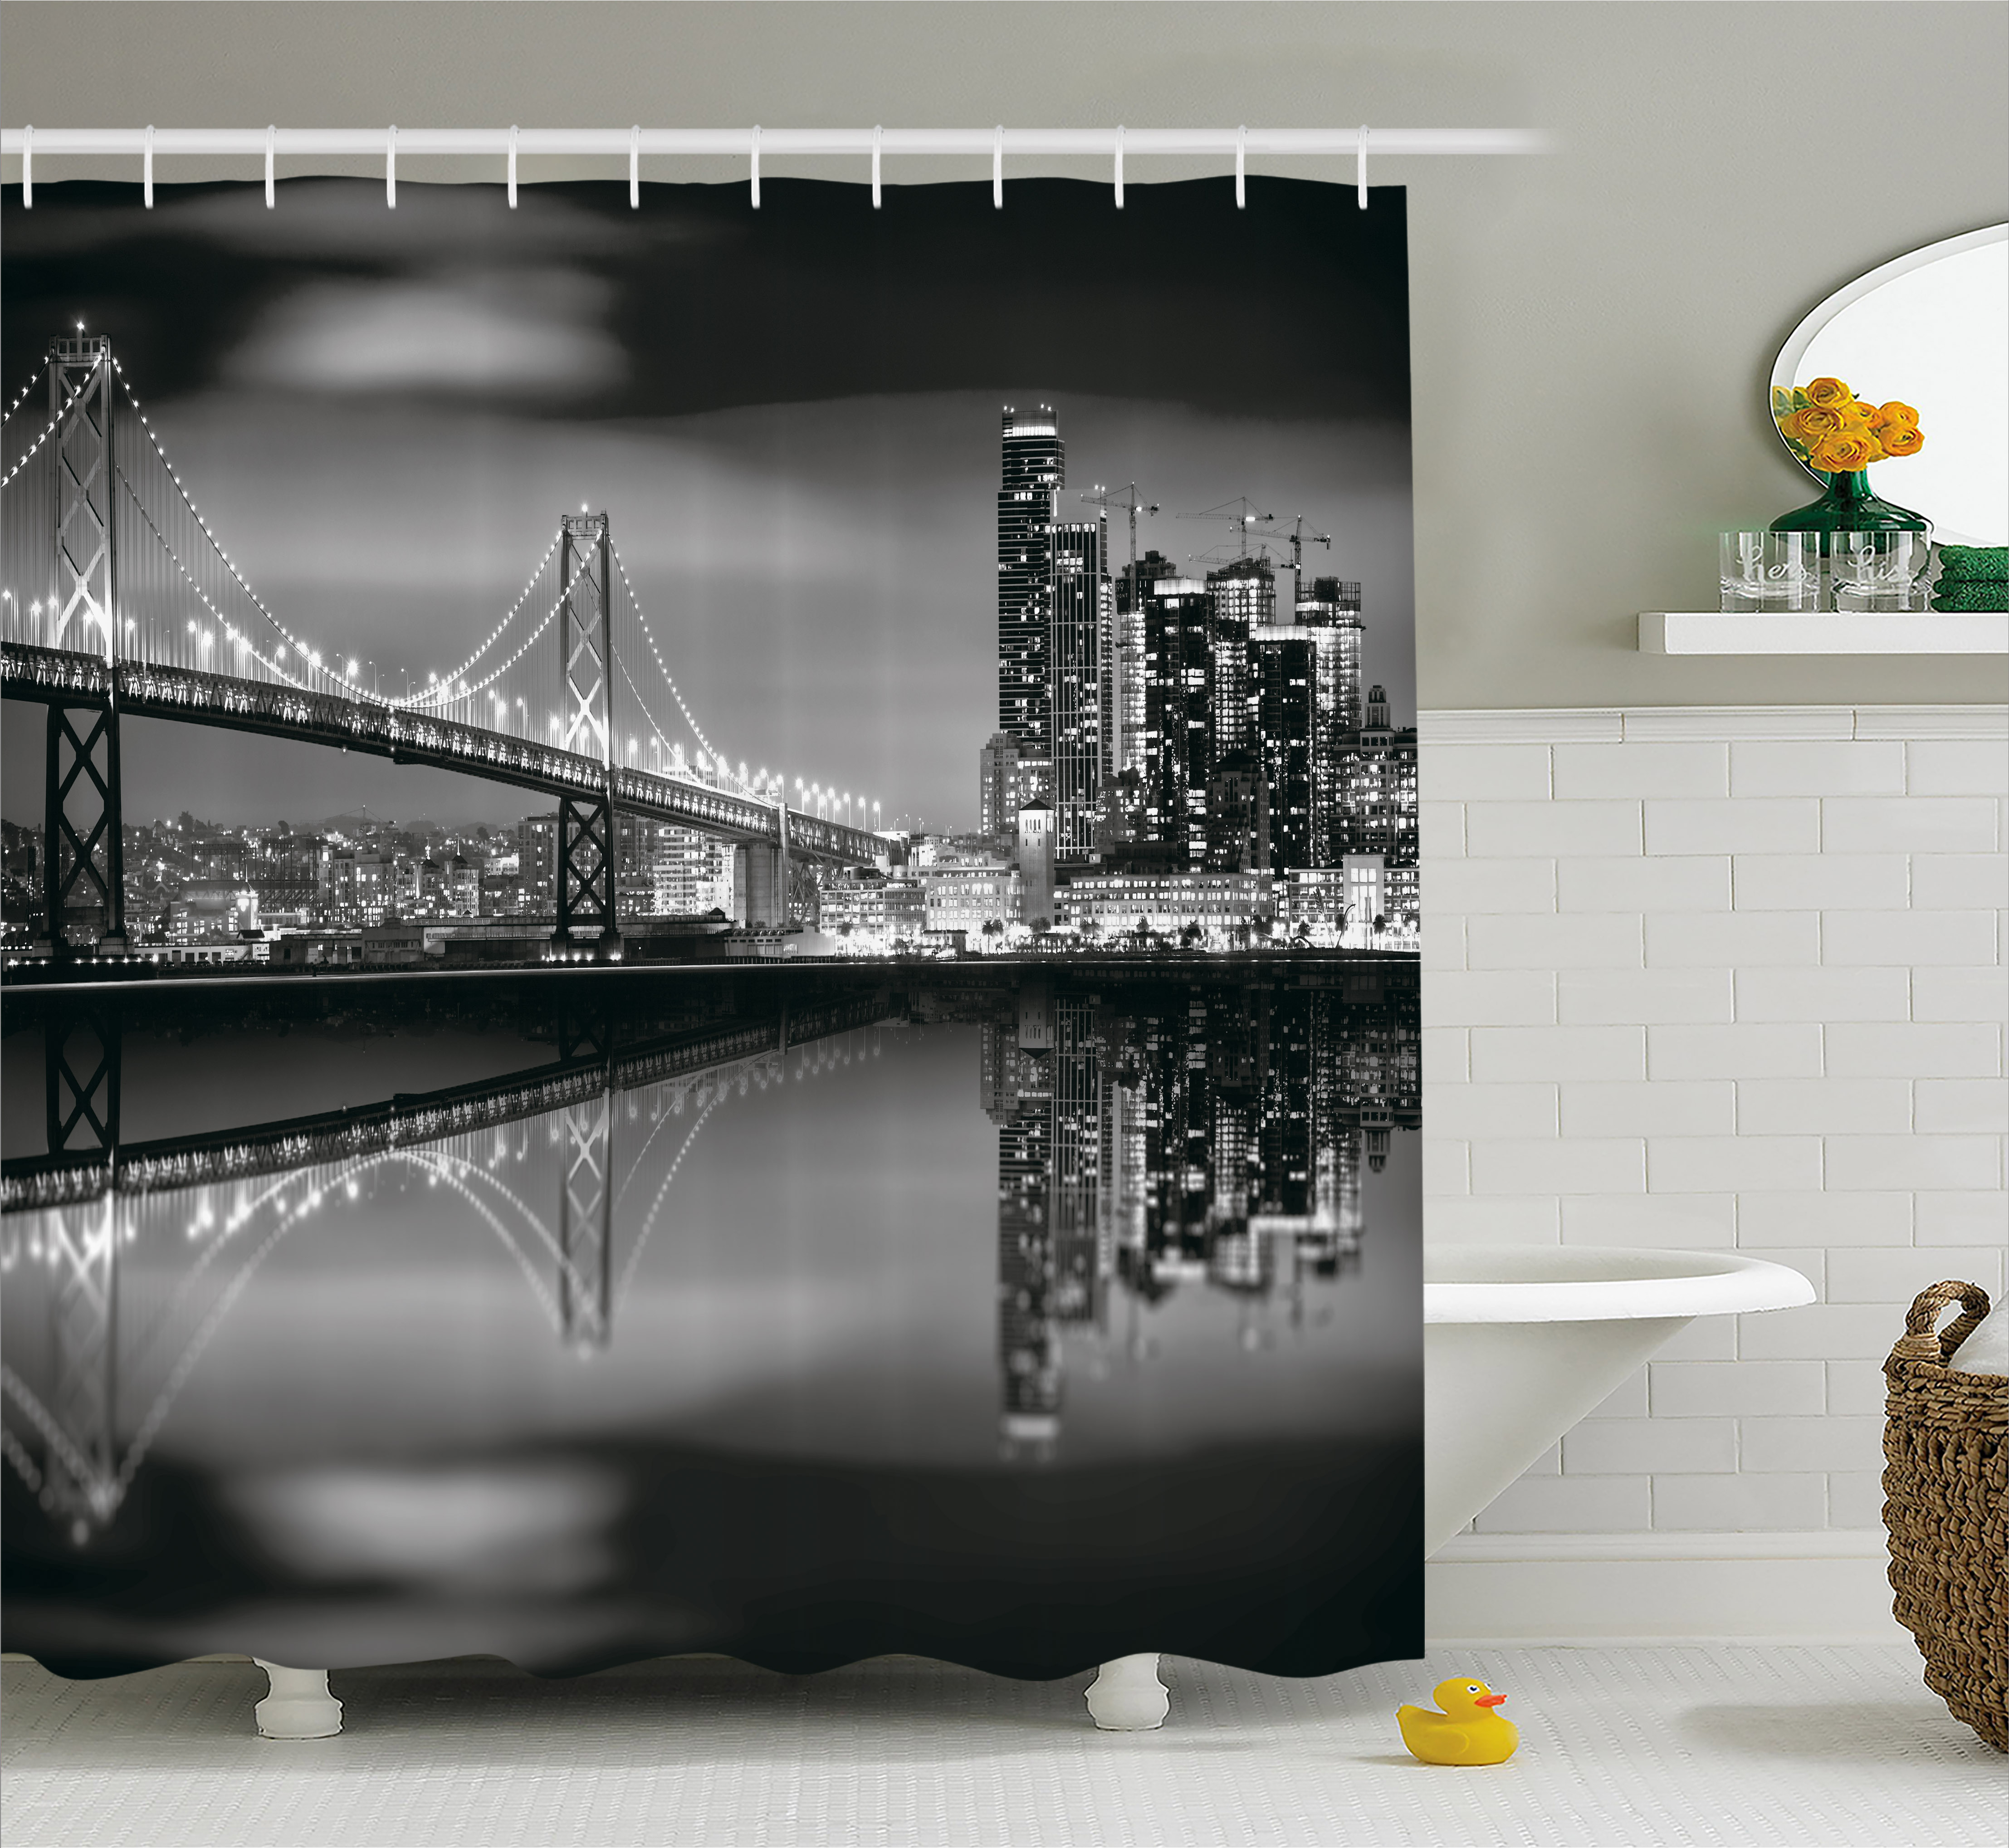 Exceptionnel Black And White Decorations Shower Curtain, San Francisco Bay Bridge  Metropolis Panorama Skyscrapers, Fabric